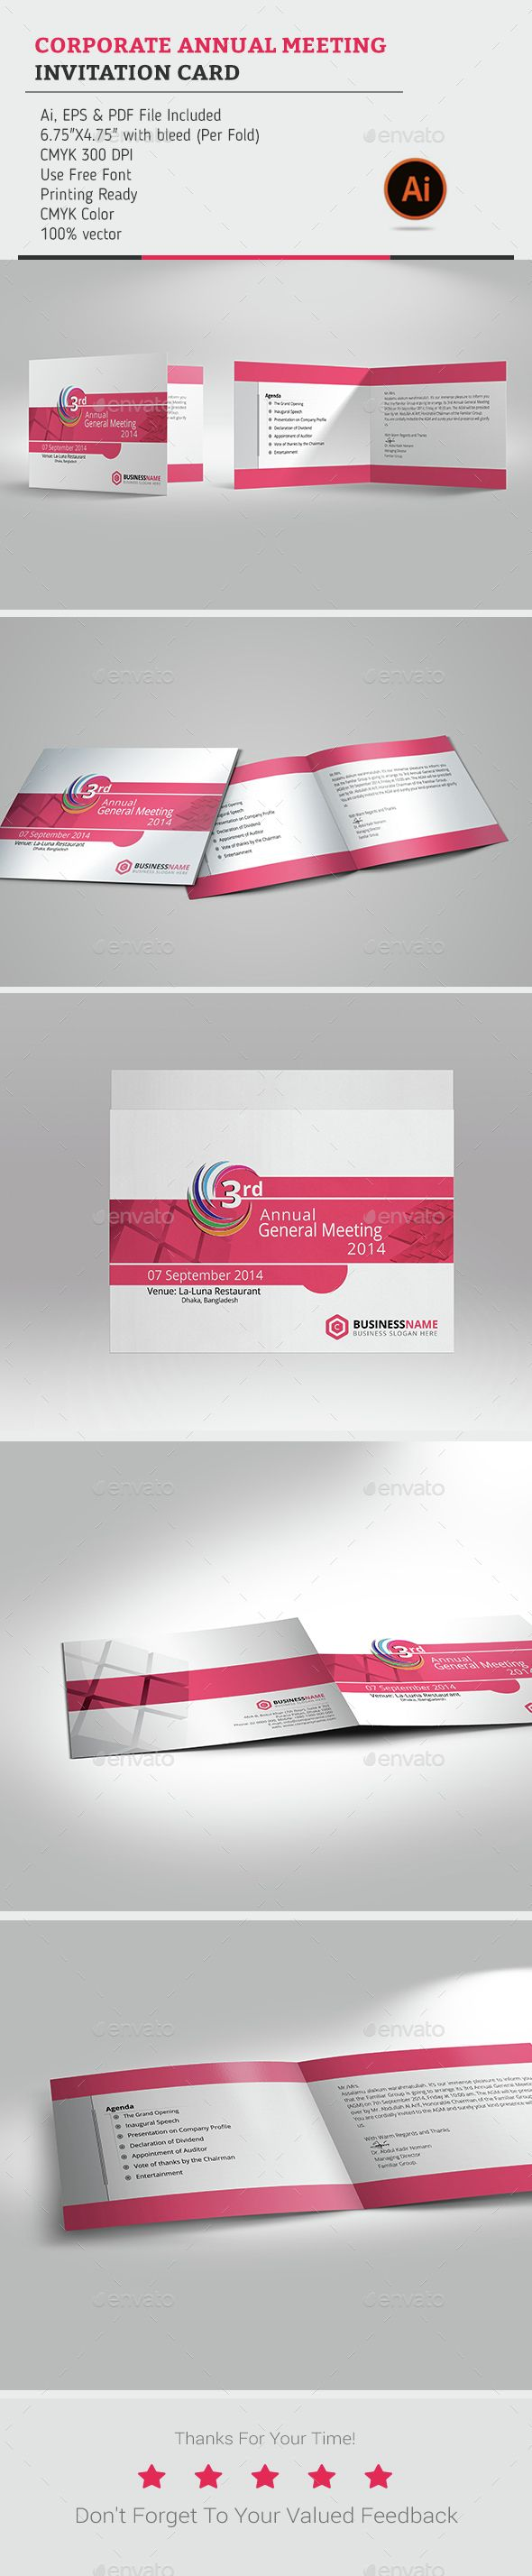 Corporate annual meeting invitation card vector eps modern print corporate annual meeting invitation card vector eps modern print design available here stopboris Image collections